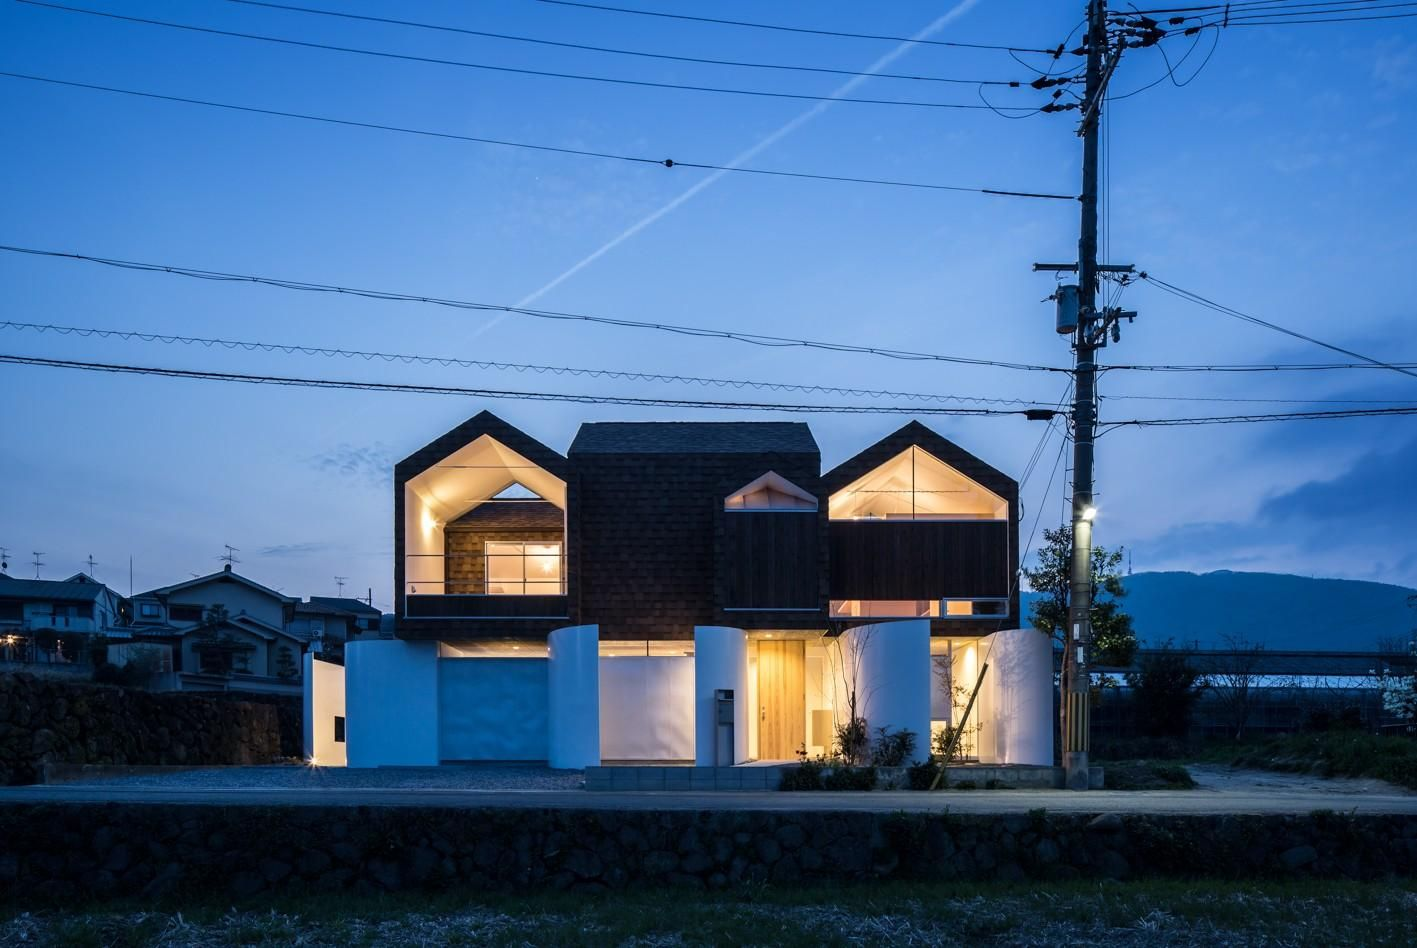 Kidantoie Leibal Featuring Minimal And Functional Designs Pinterest Architecture House And Design